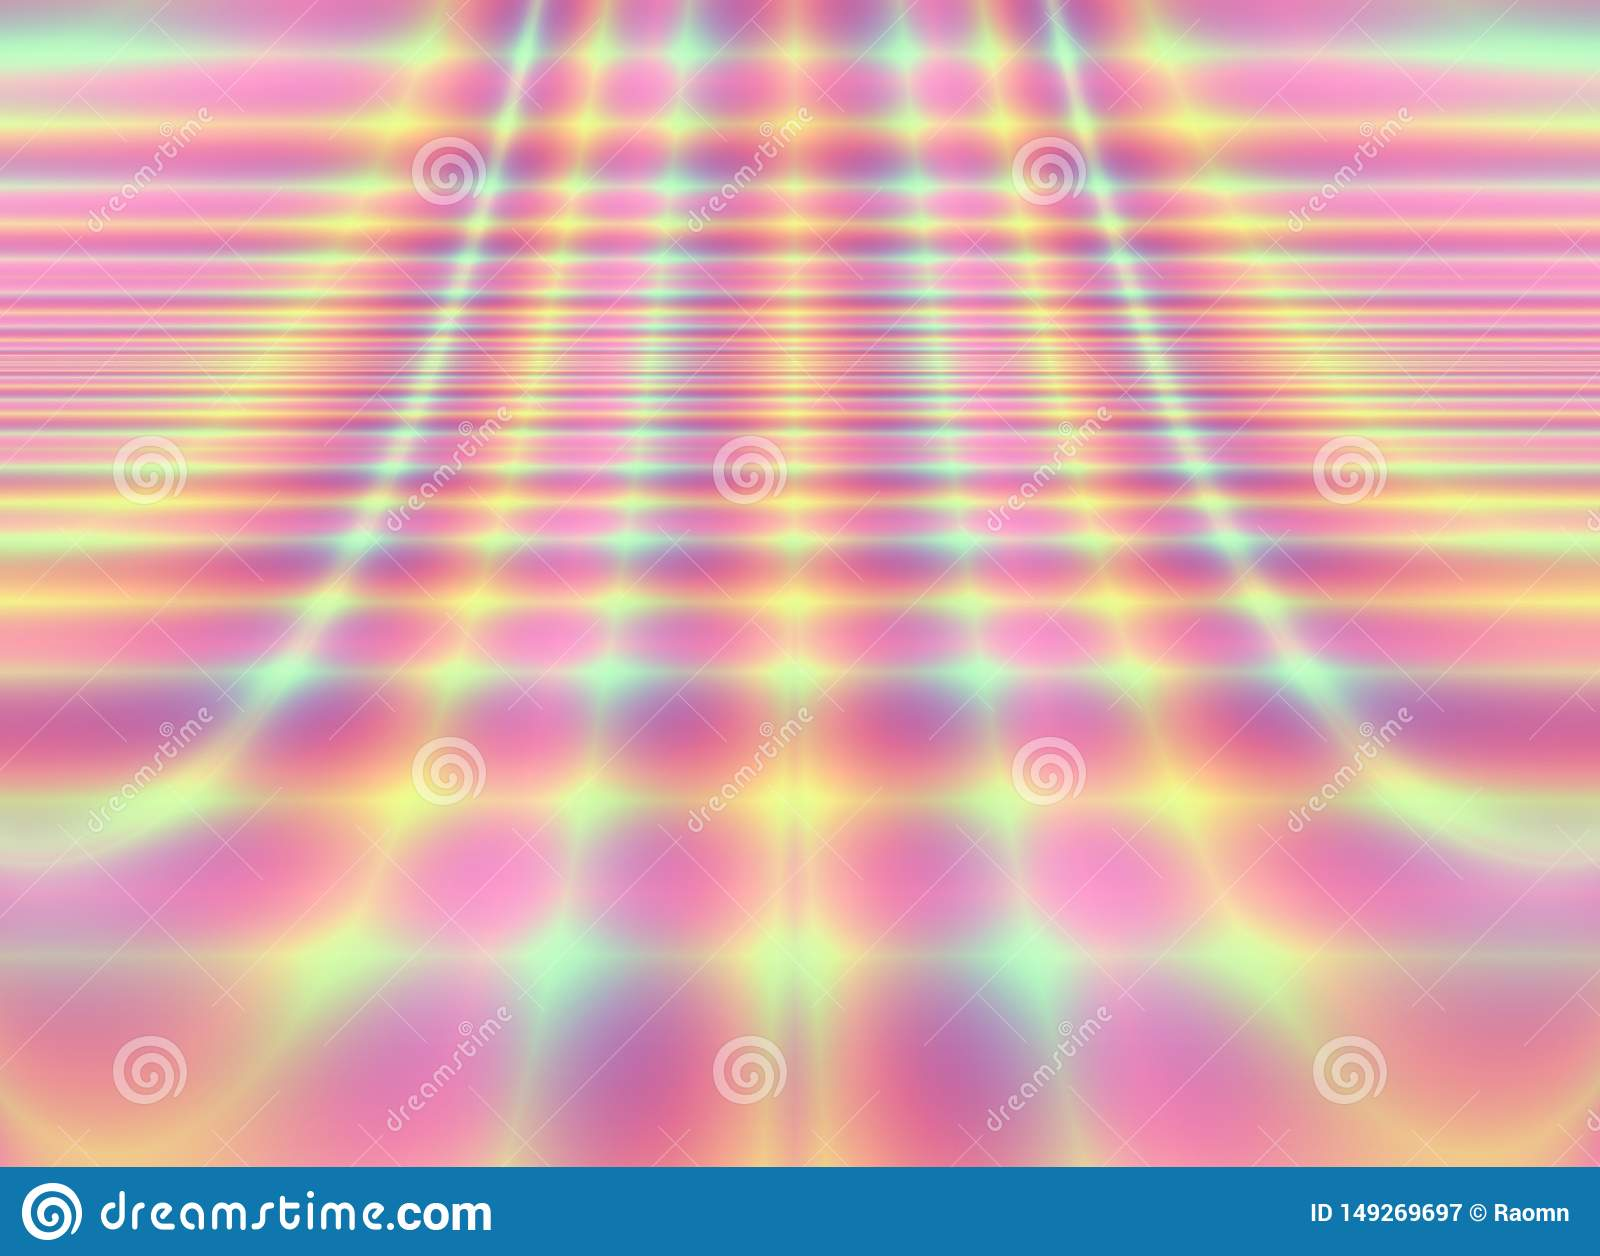 Dance Floor Art Neon Light Abstract Wallpaper Stock